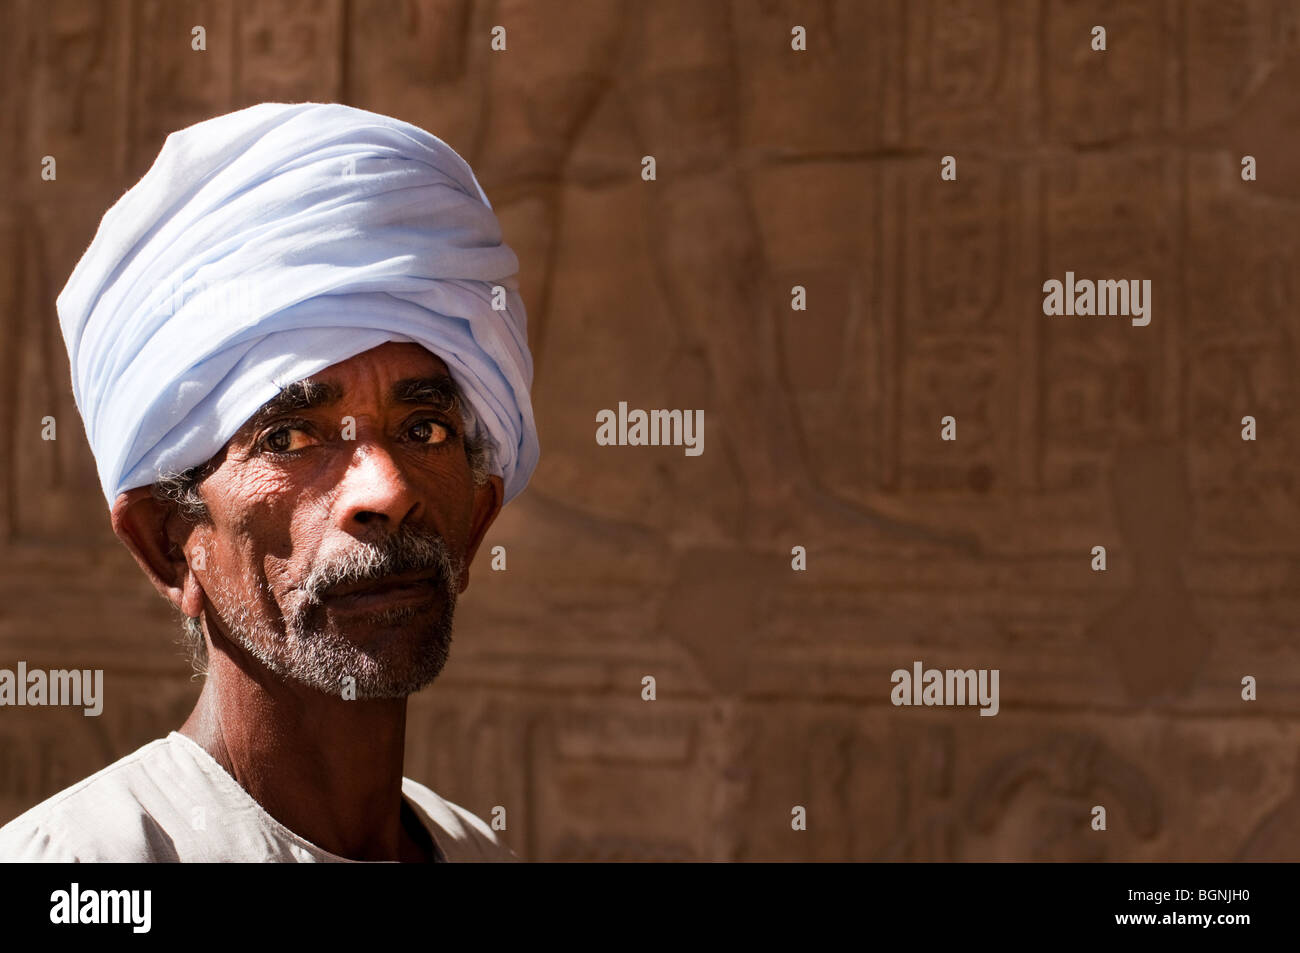 Older Egyptian male in white turban with hieroglyphics behind him - Stock Image